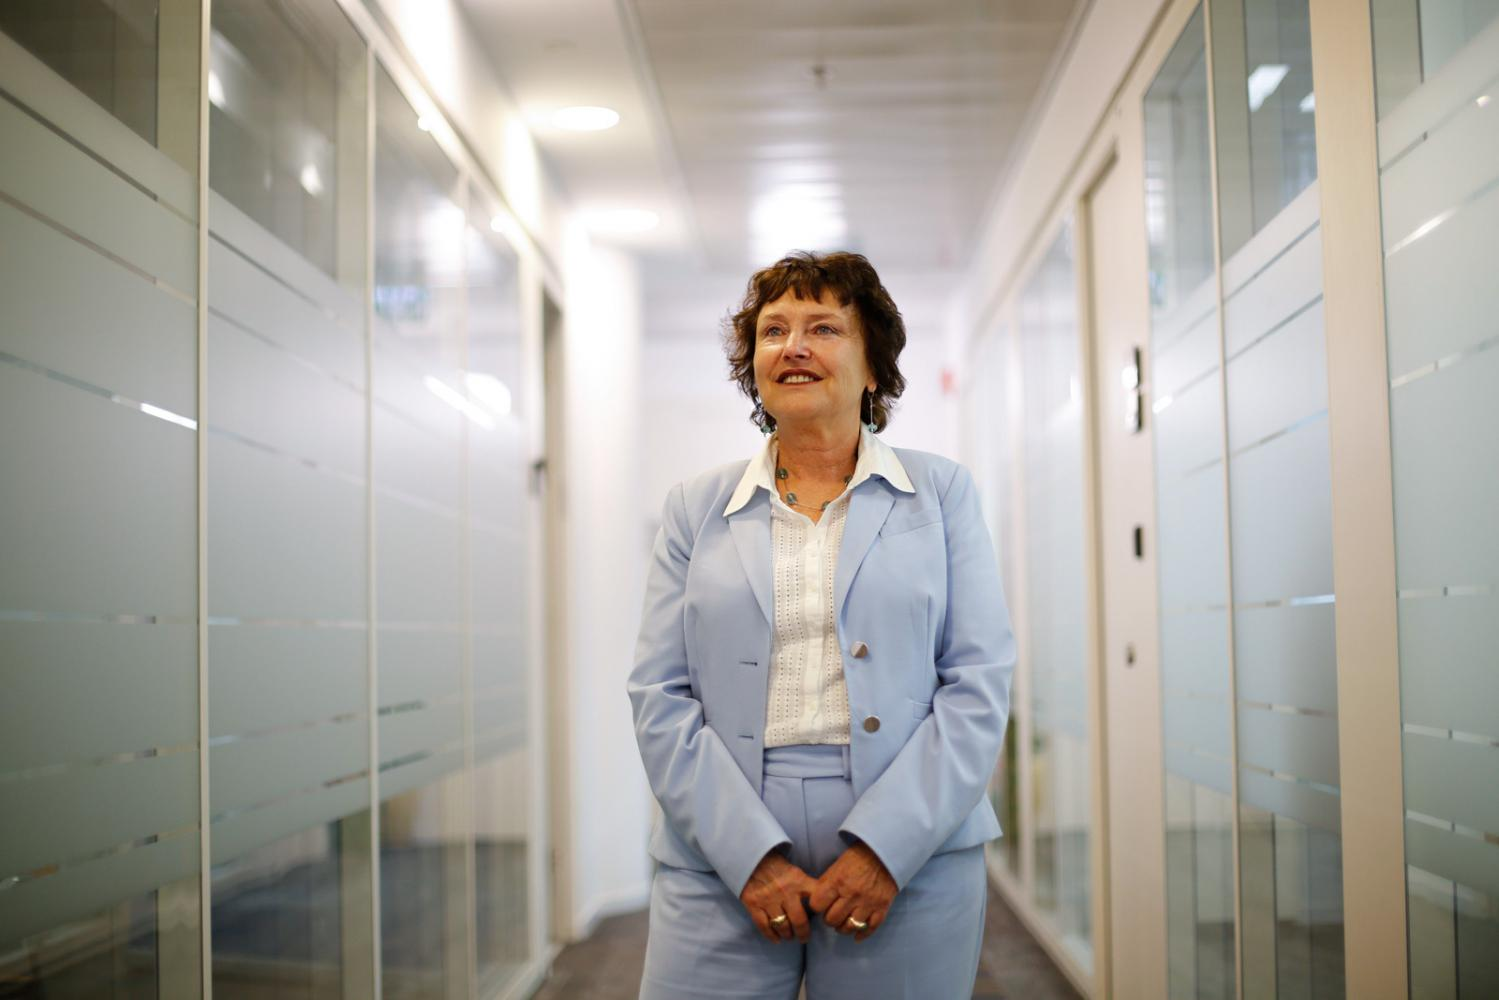 Karnit Flug, governor of the Central Bank of Israel, poses for a portrait following a Bloomberg Television interview in Jerusalem, Israel, on Wednesday, March 28, 2018.